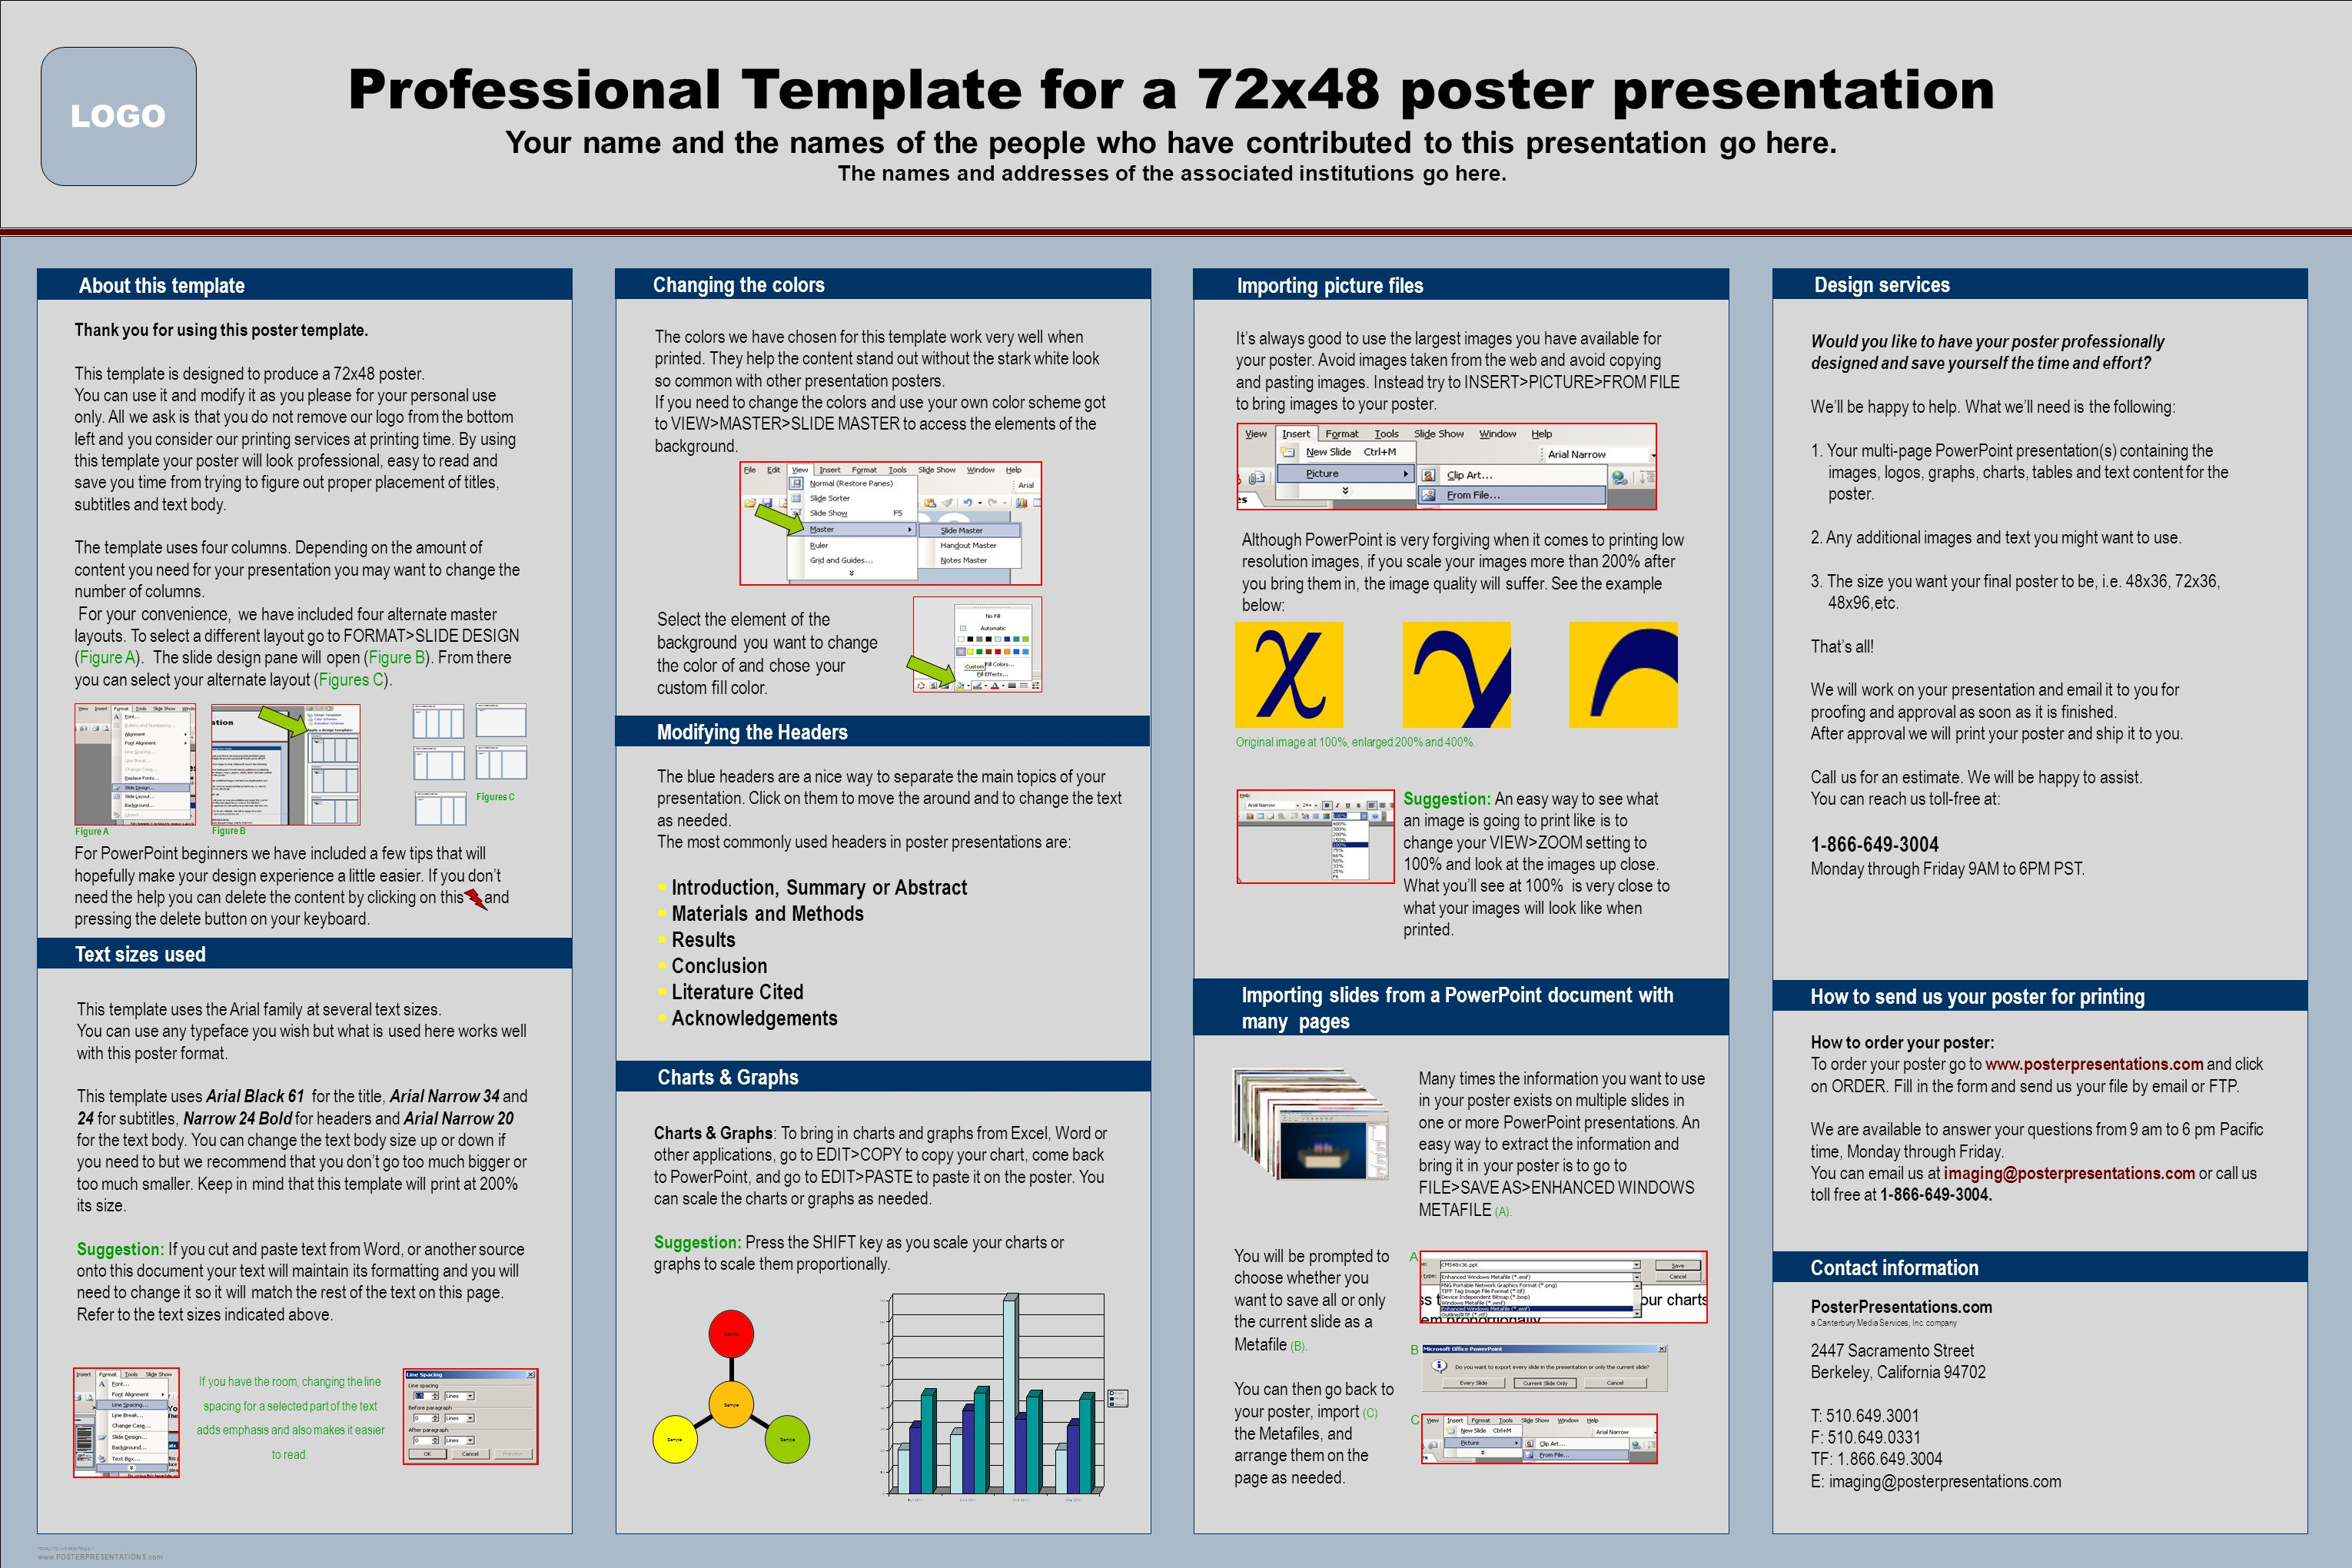 professional template for a 72x48 poster presentation ppt download